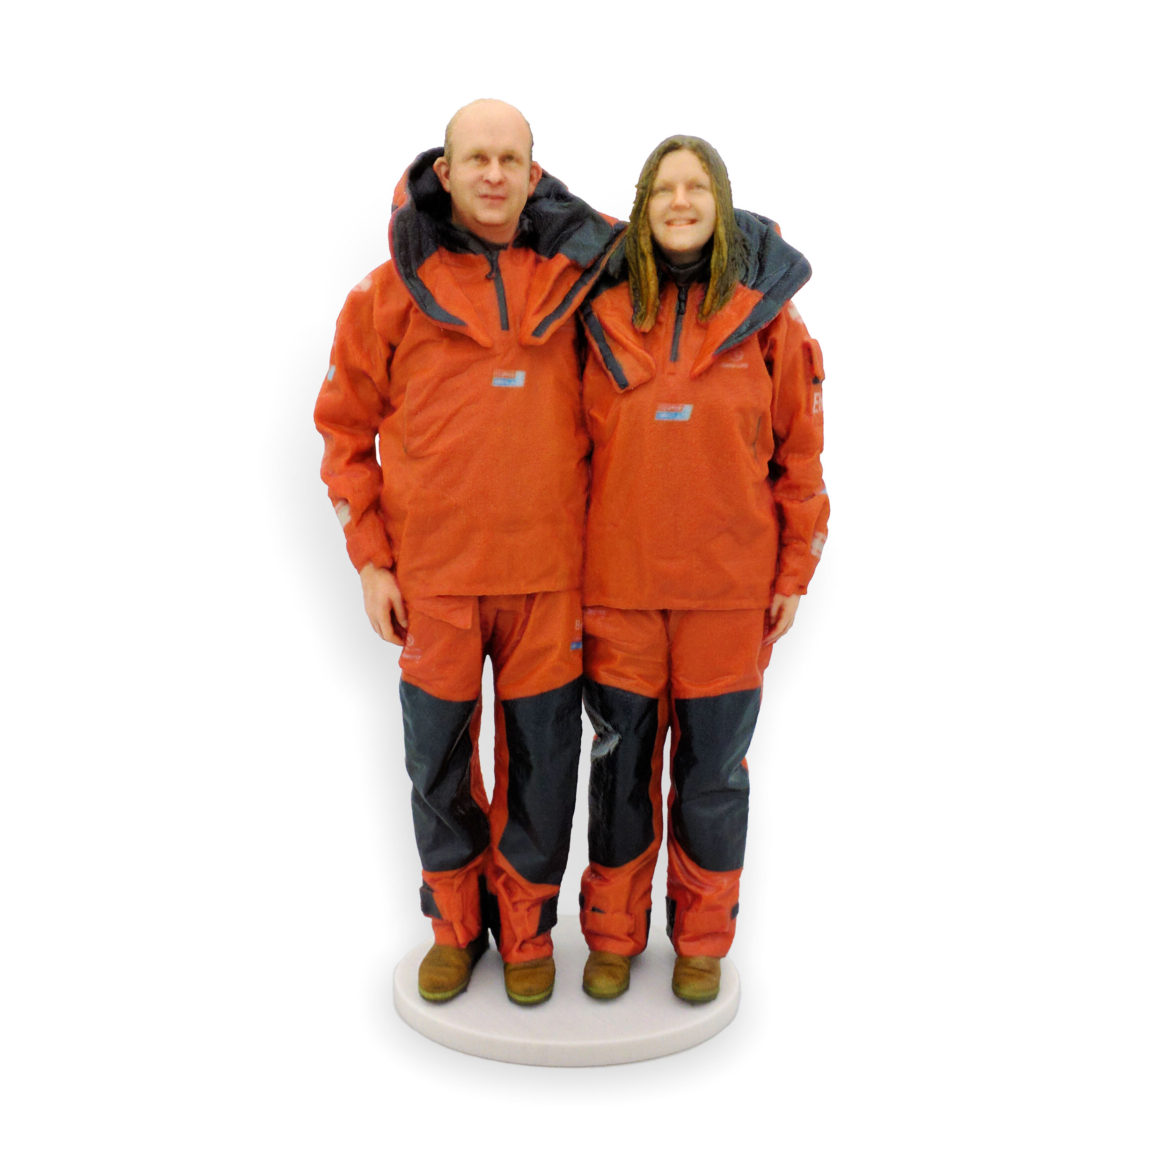 my3Dtwin, 3D Pinted Custom Figurines of a couple in orange overalls